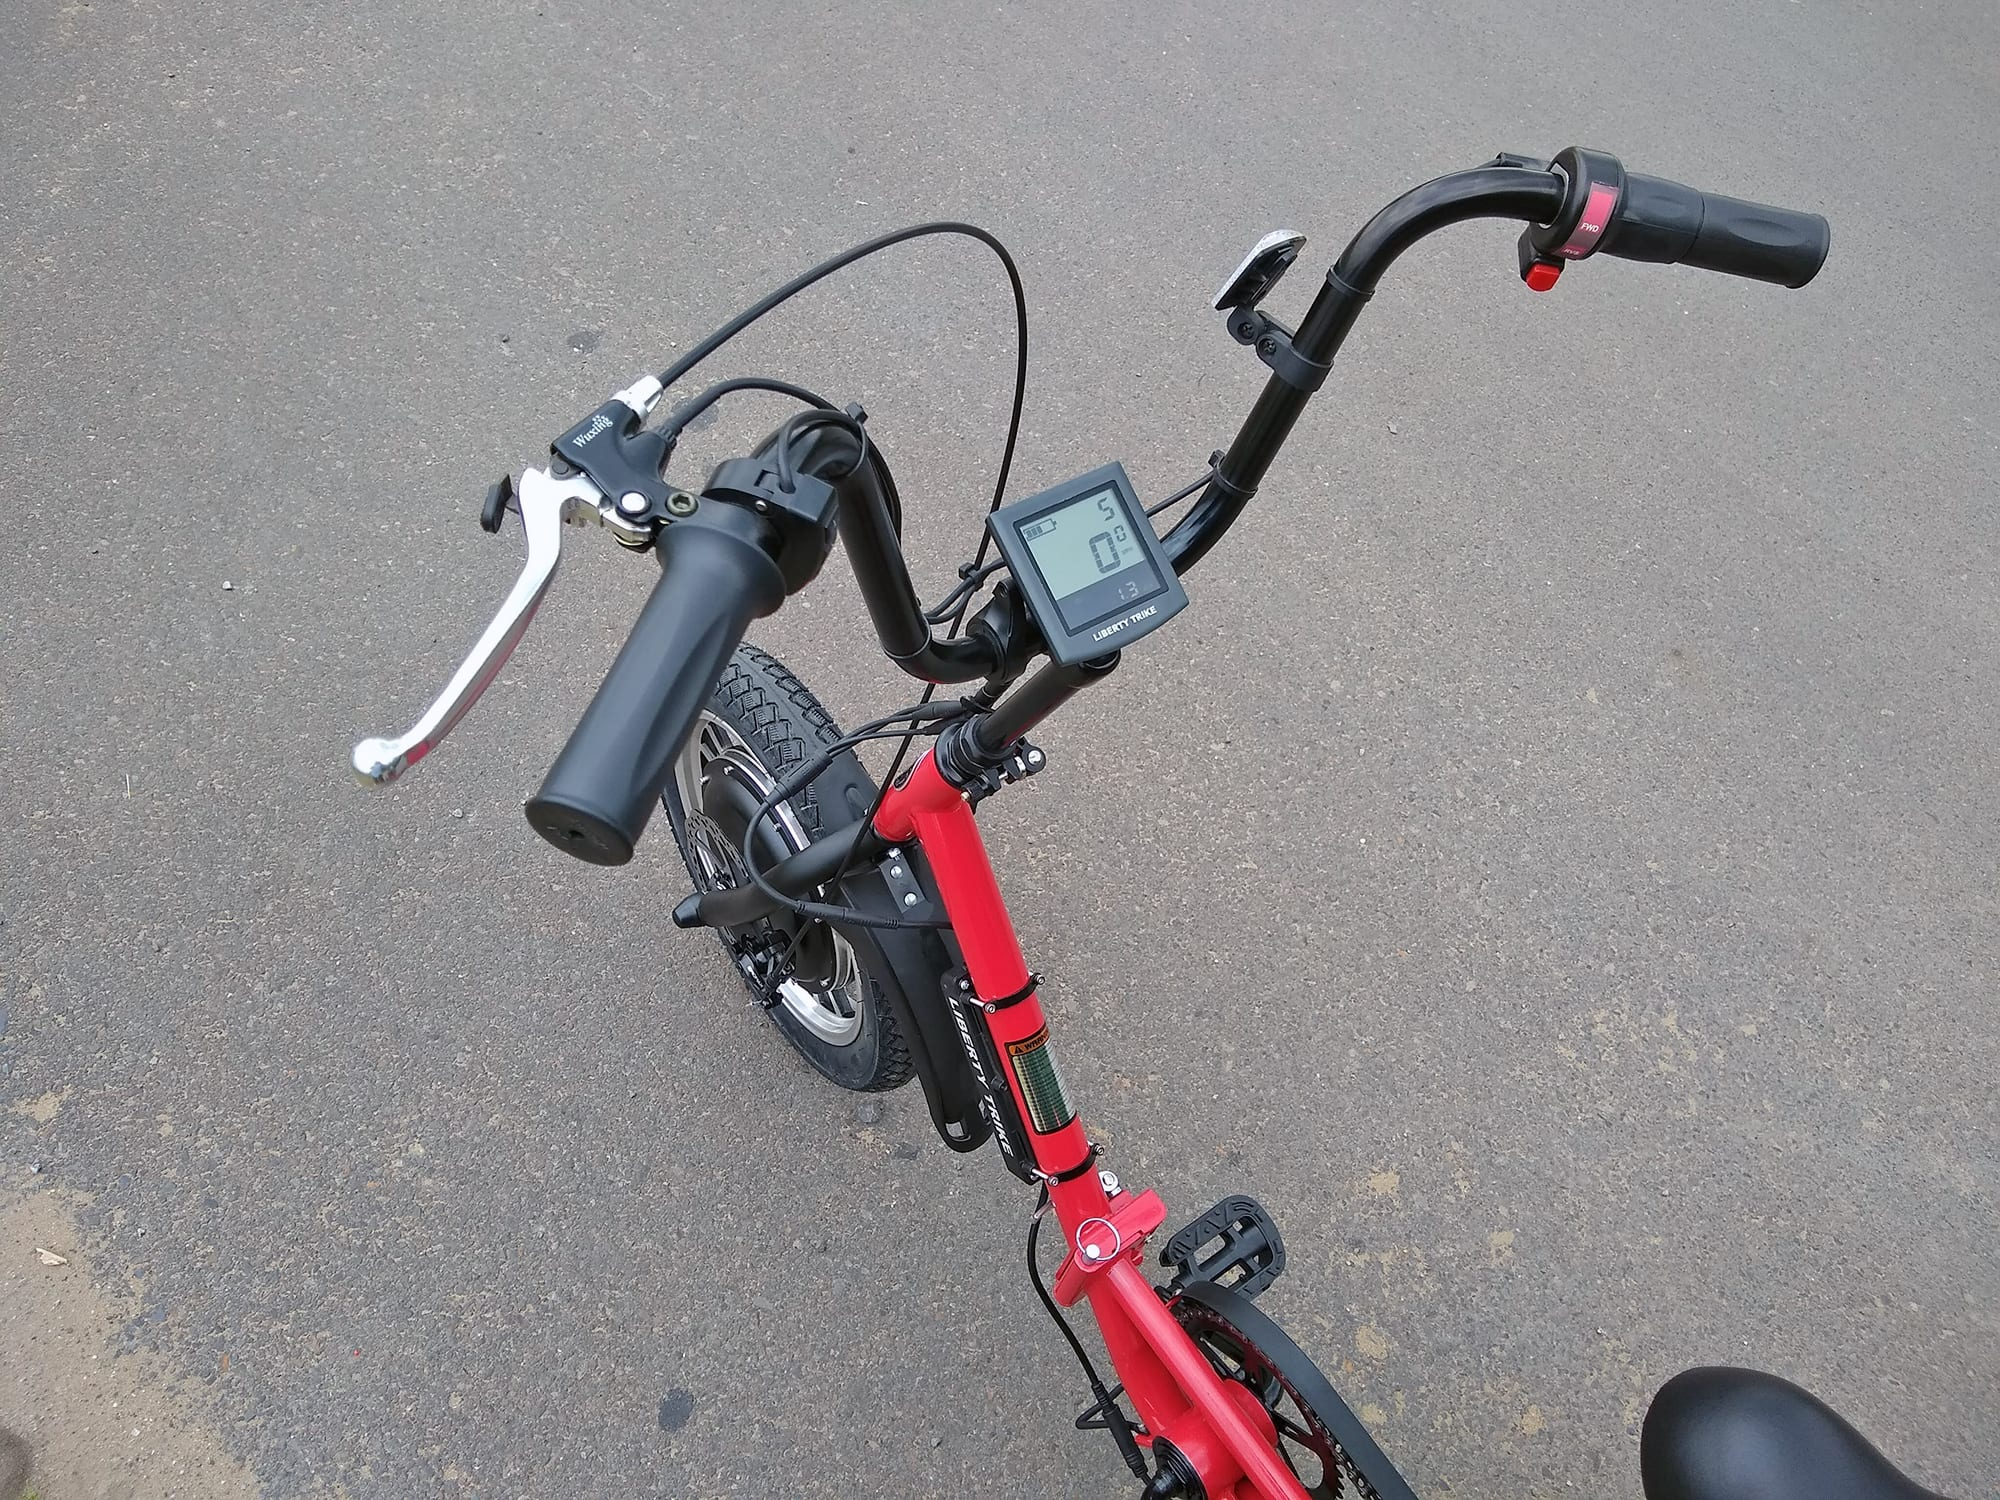 Liberty Trike Electric Tricycle Review - Prices, Specs, Videos, Photos